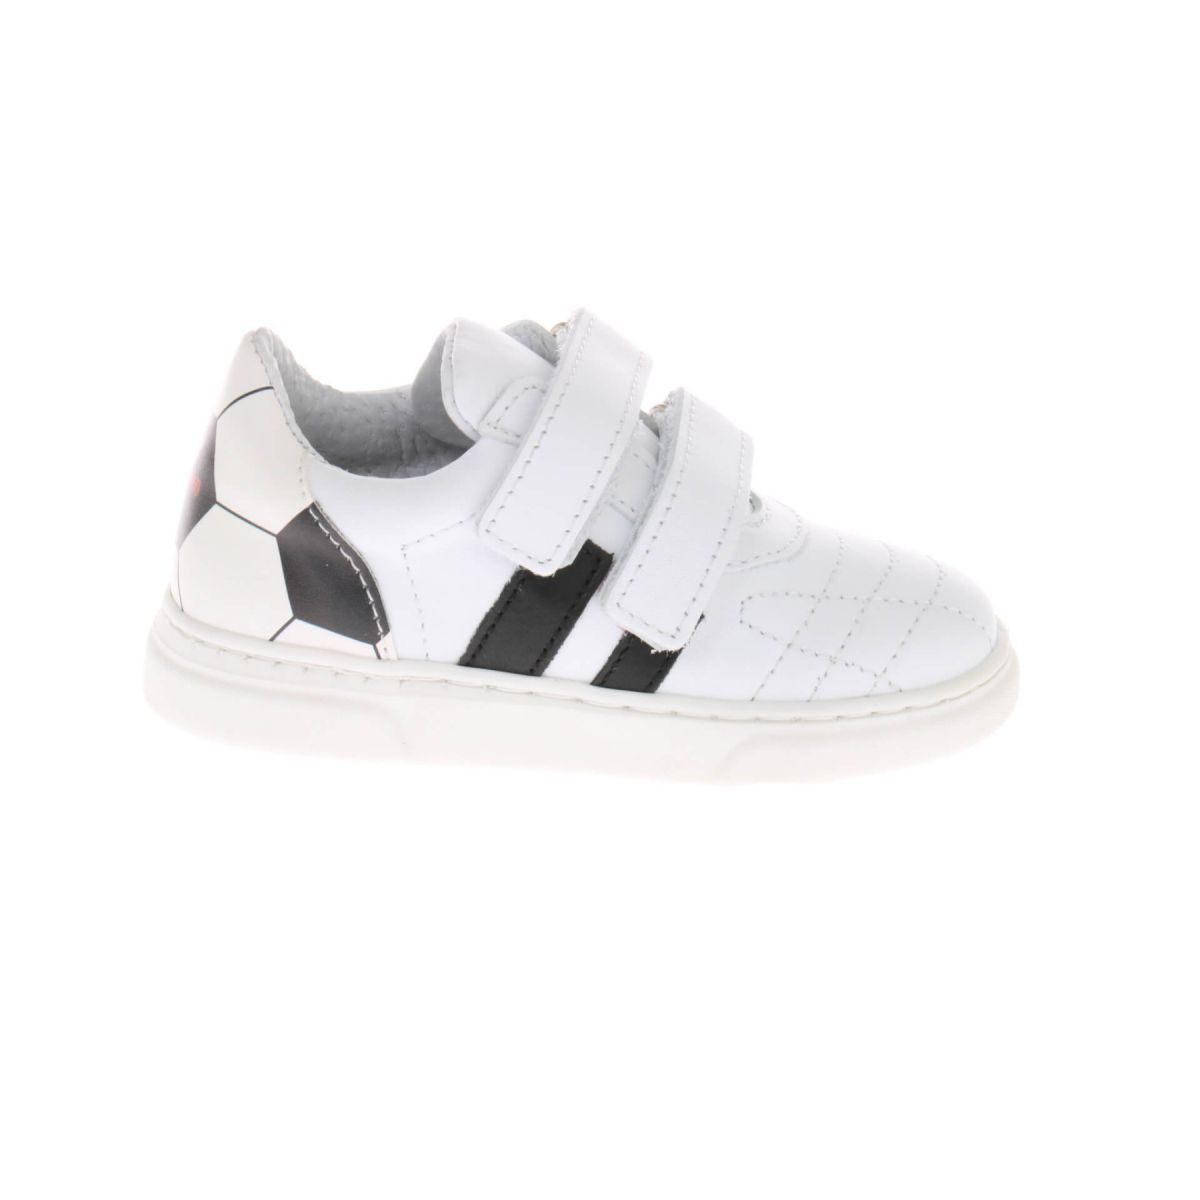 Pinocchio P1324 Voetbal Sneakers Wit Klittenband